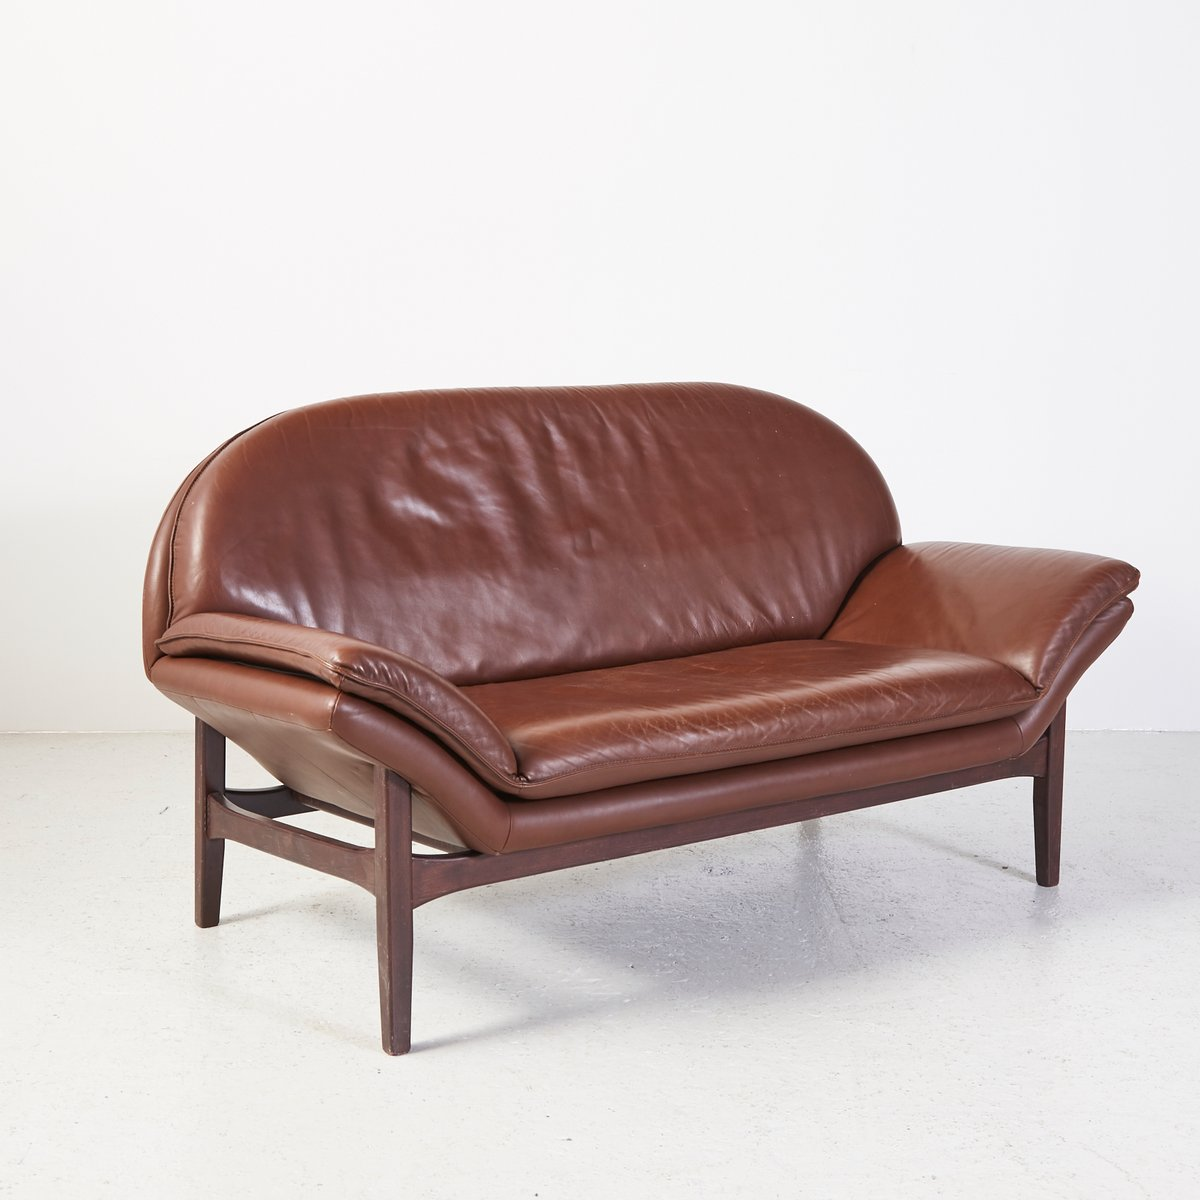 Vintage Leather 2 Seater Sofa for sale at Pamono : vintage leather 2 seater sofa 2 from www.pamono.com.au size 1200 x 1200 jpeg 71kB